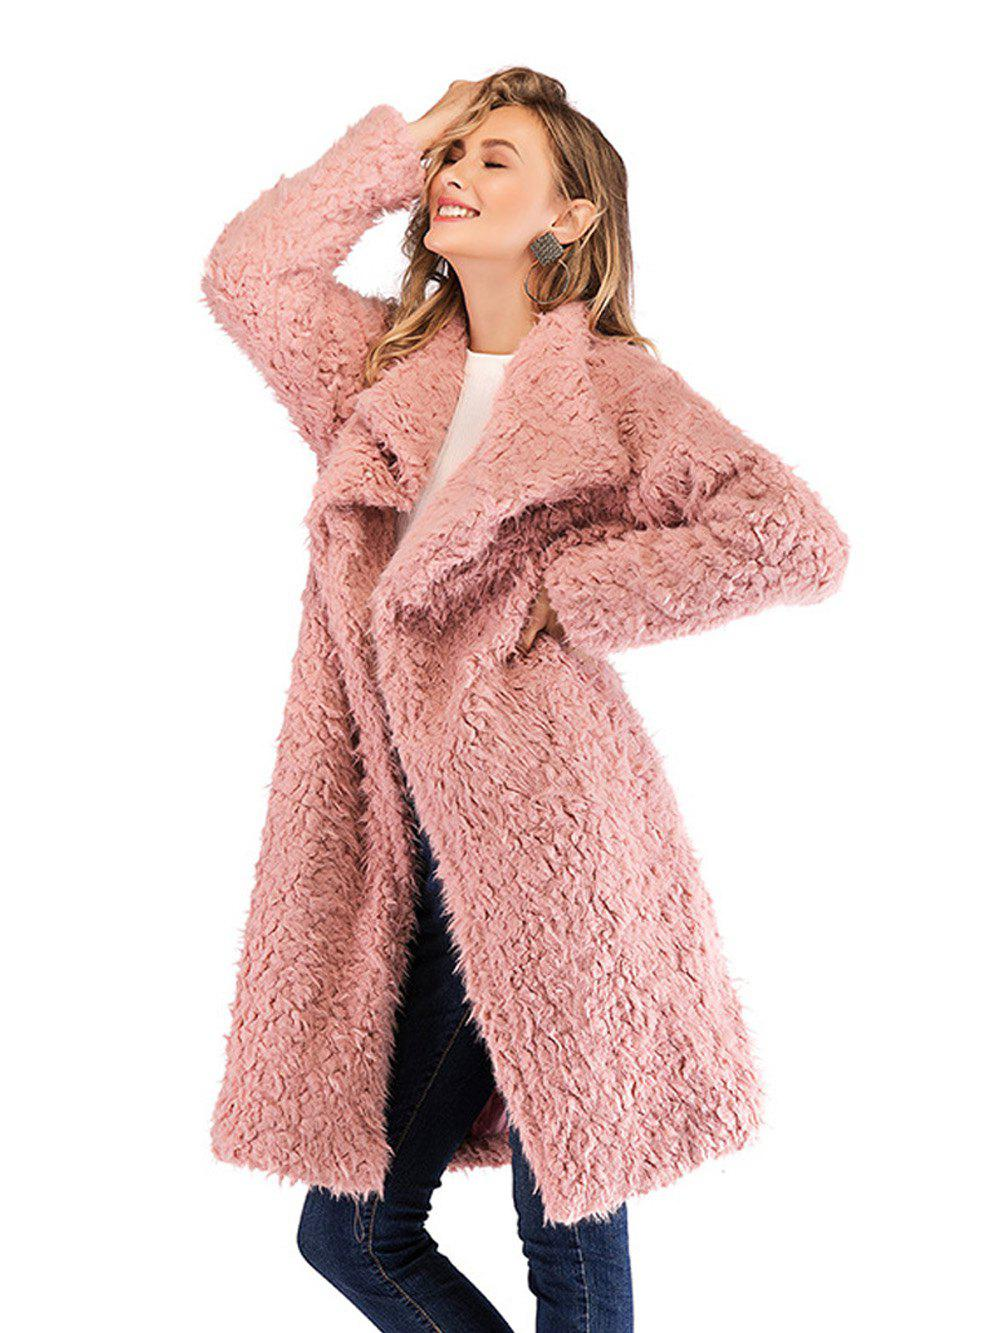 dd2de42a92d72 Shop Wo Women Elegant Faux Fur Lapel Coat Women Fluffy Warm Long Sleeve Female  Outerwear Chic